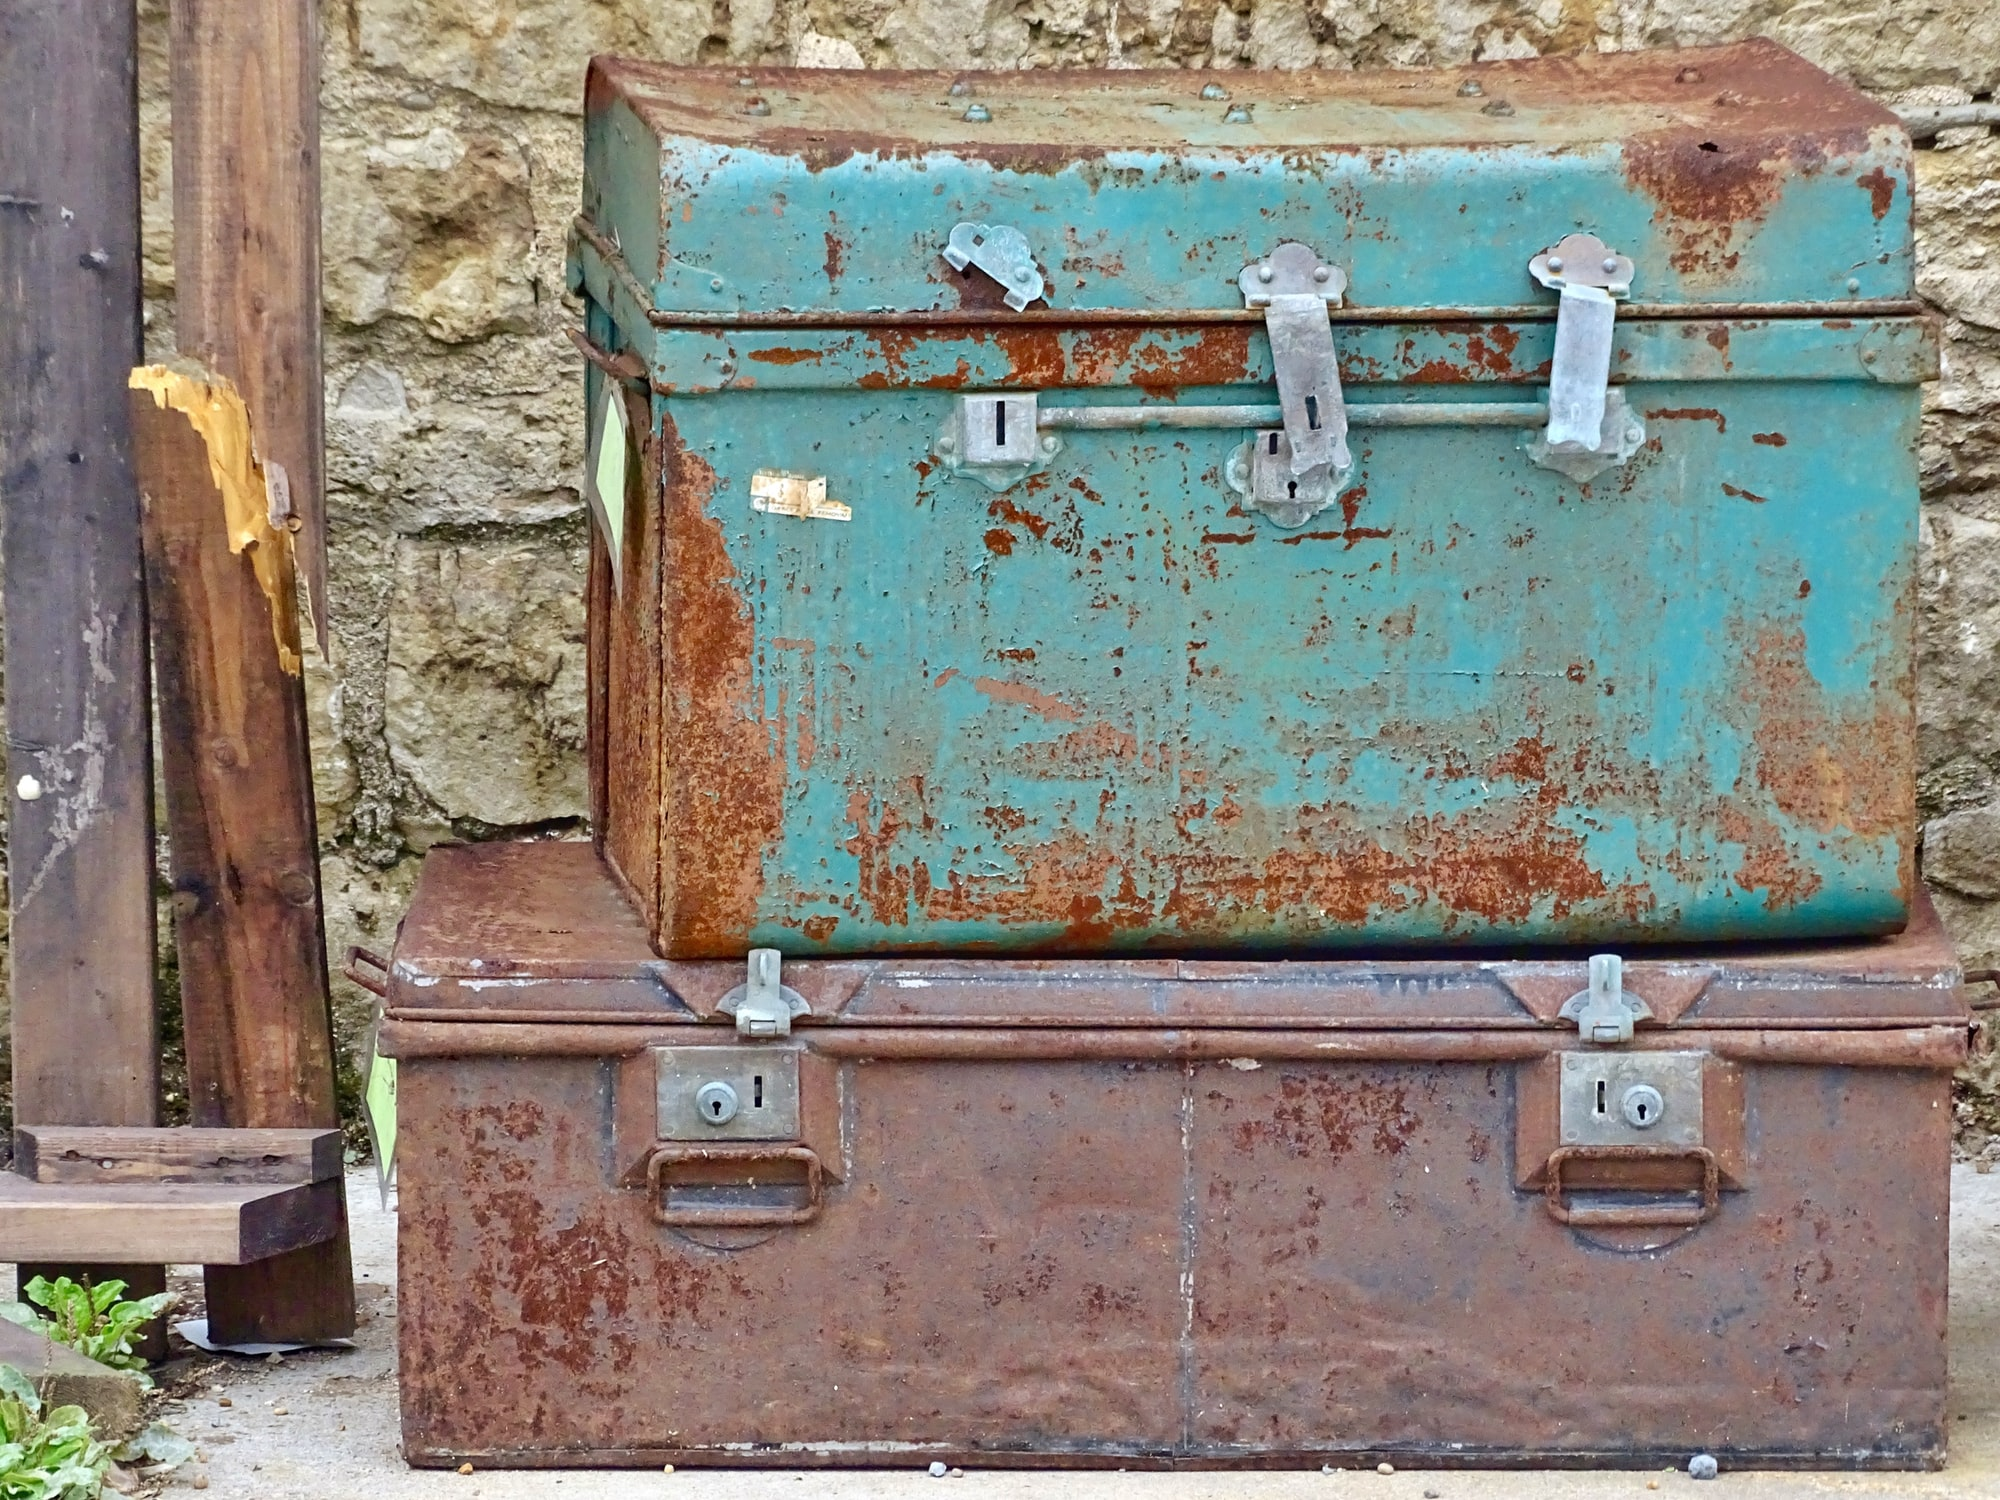 Days gone by. These suitcases have seen better days I feel.  However they still have a sense of style. I love the rustic look of them.